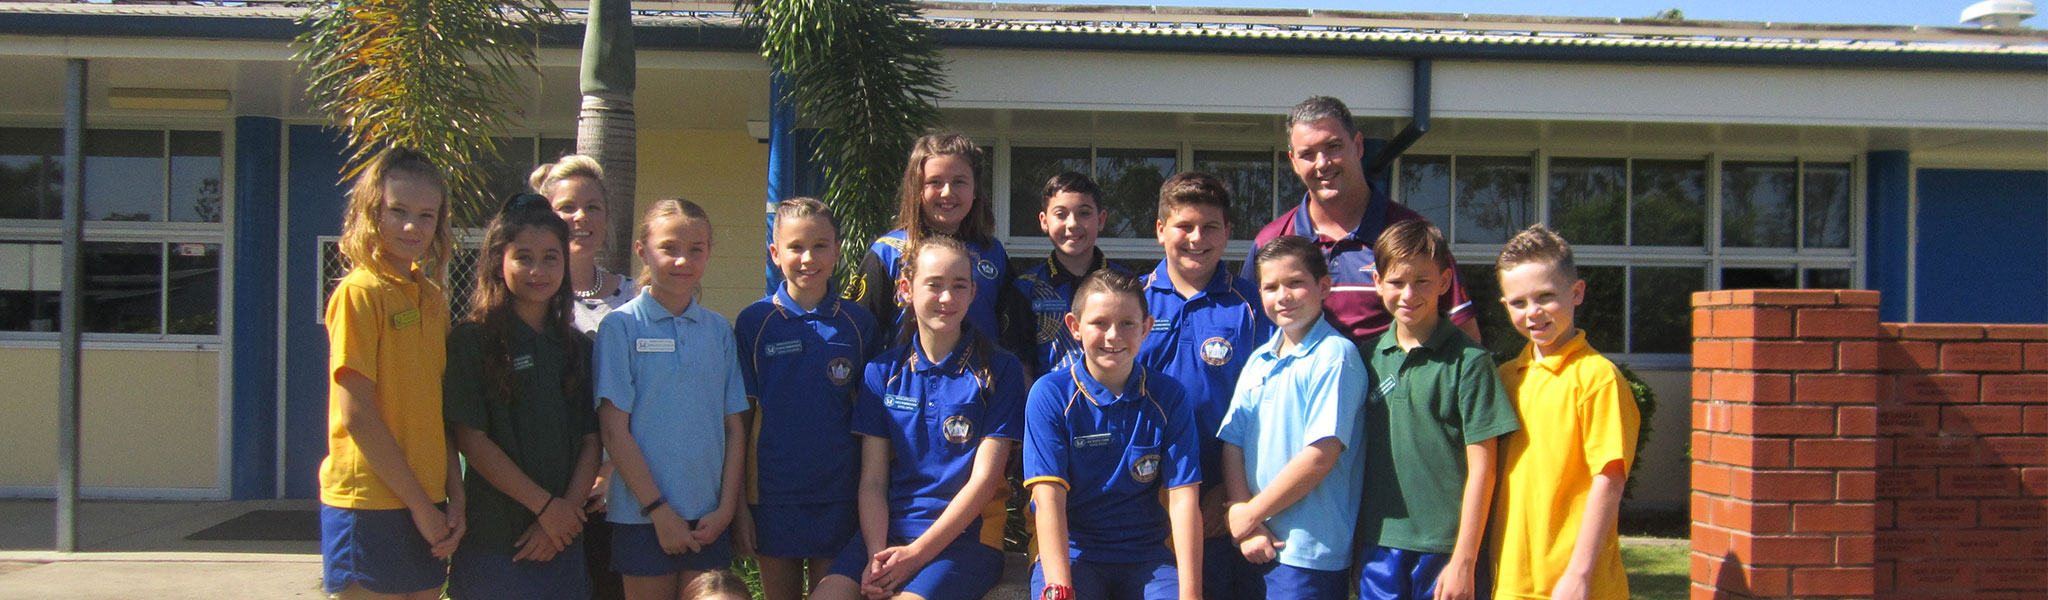 Marian State School students